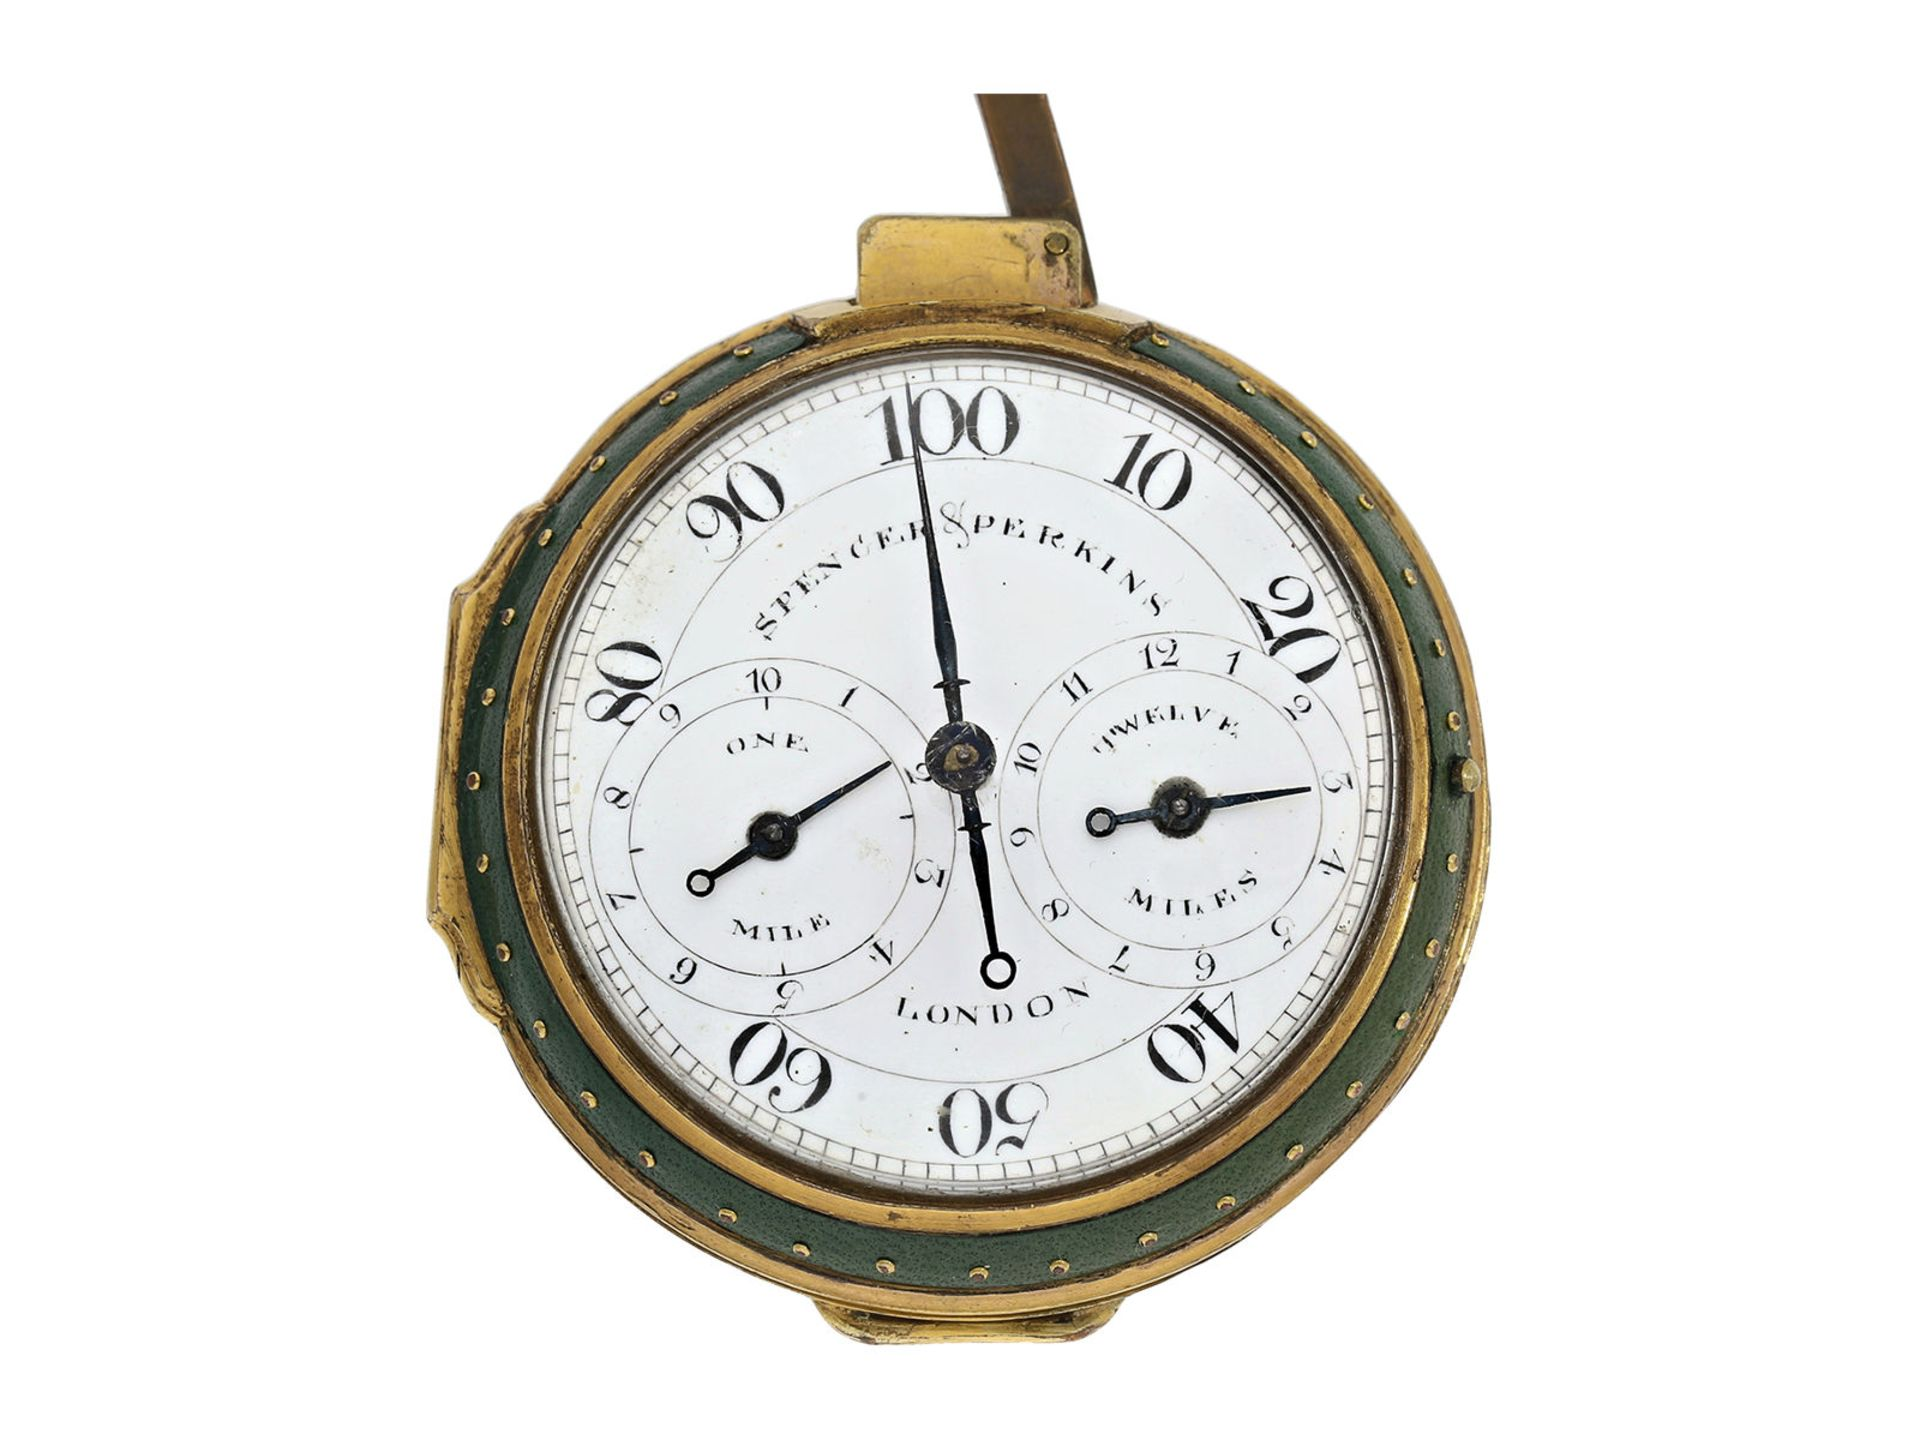 Pocket watch: very early and rare English pedometer, Spencer and Perkins London, ca. 1780